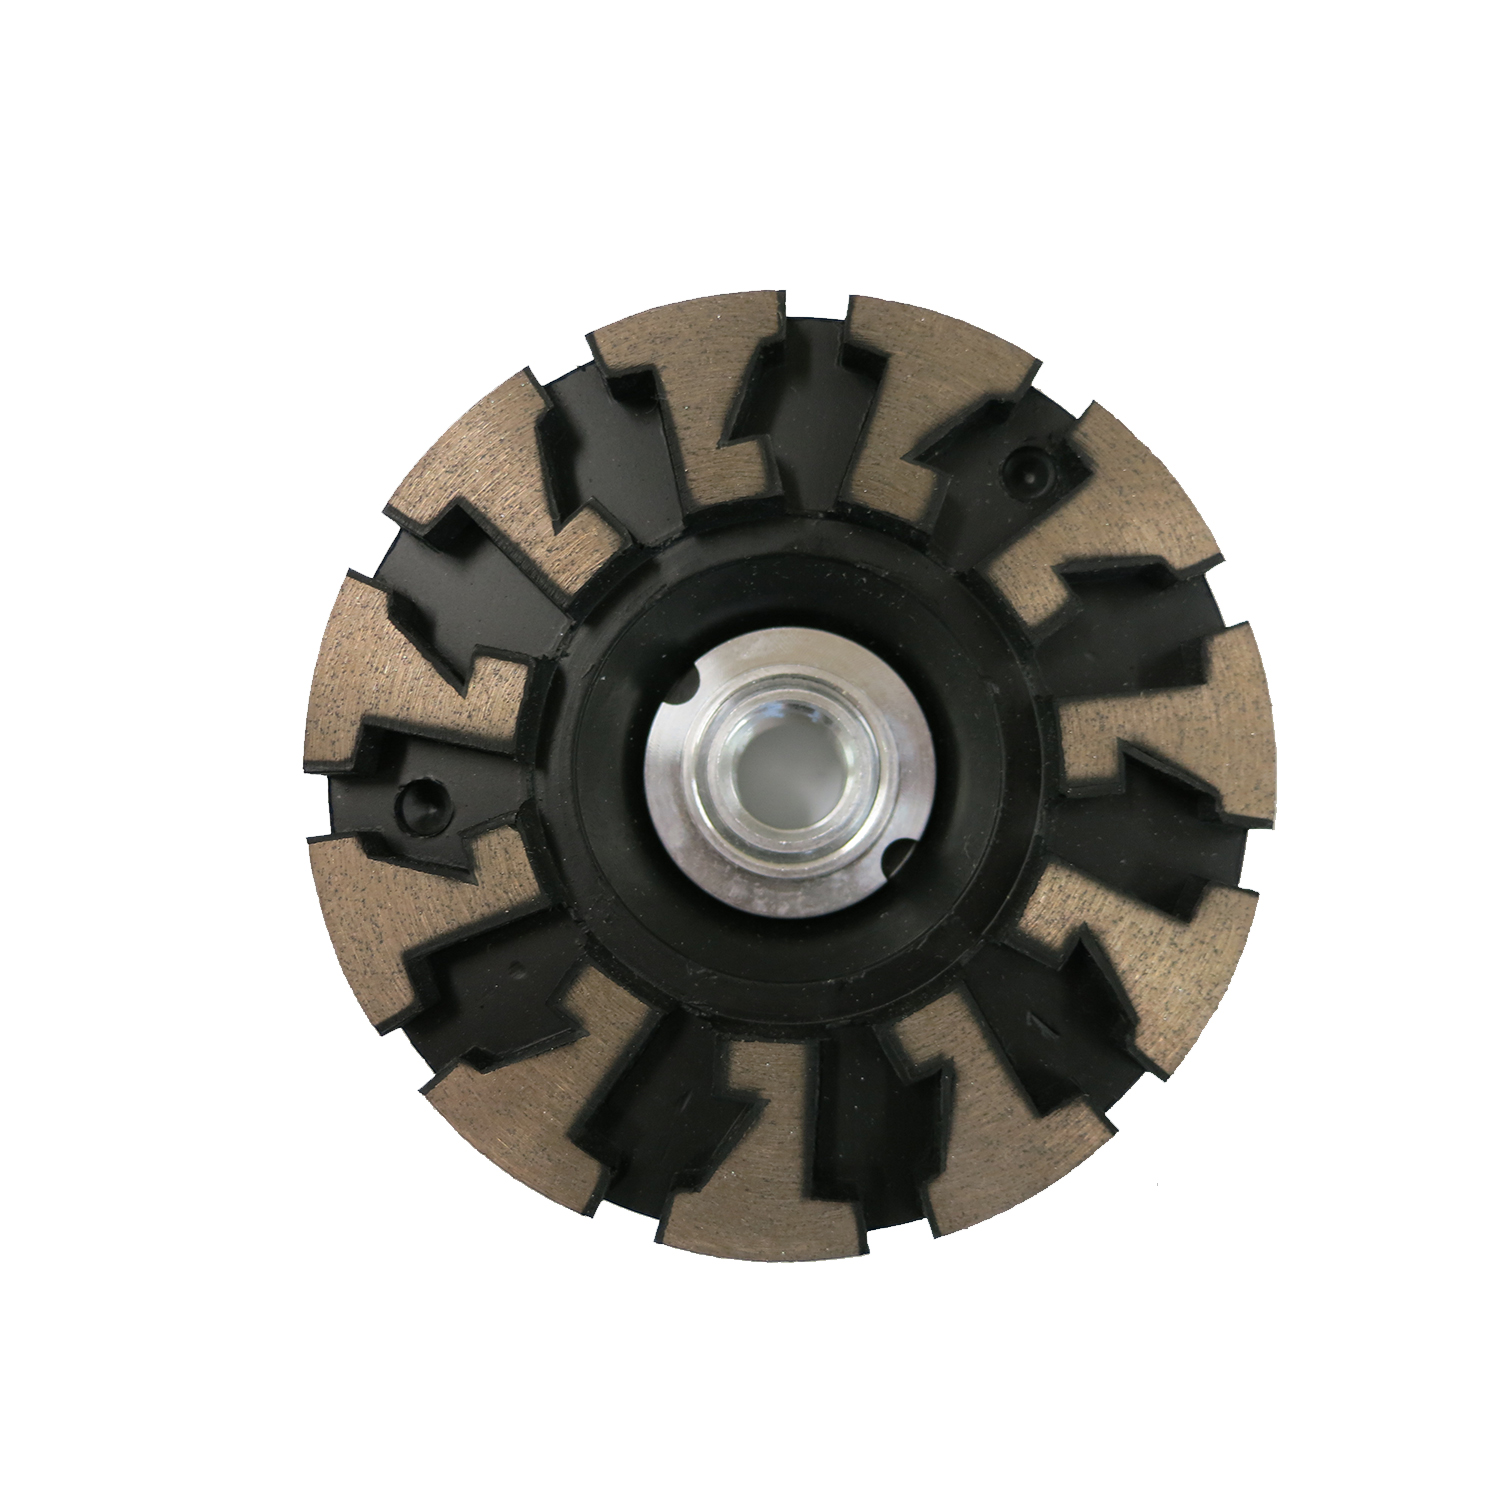 Rubber-Body Wheel - designed to counter wobble. Great on stone and concrete